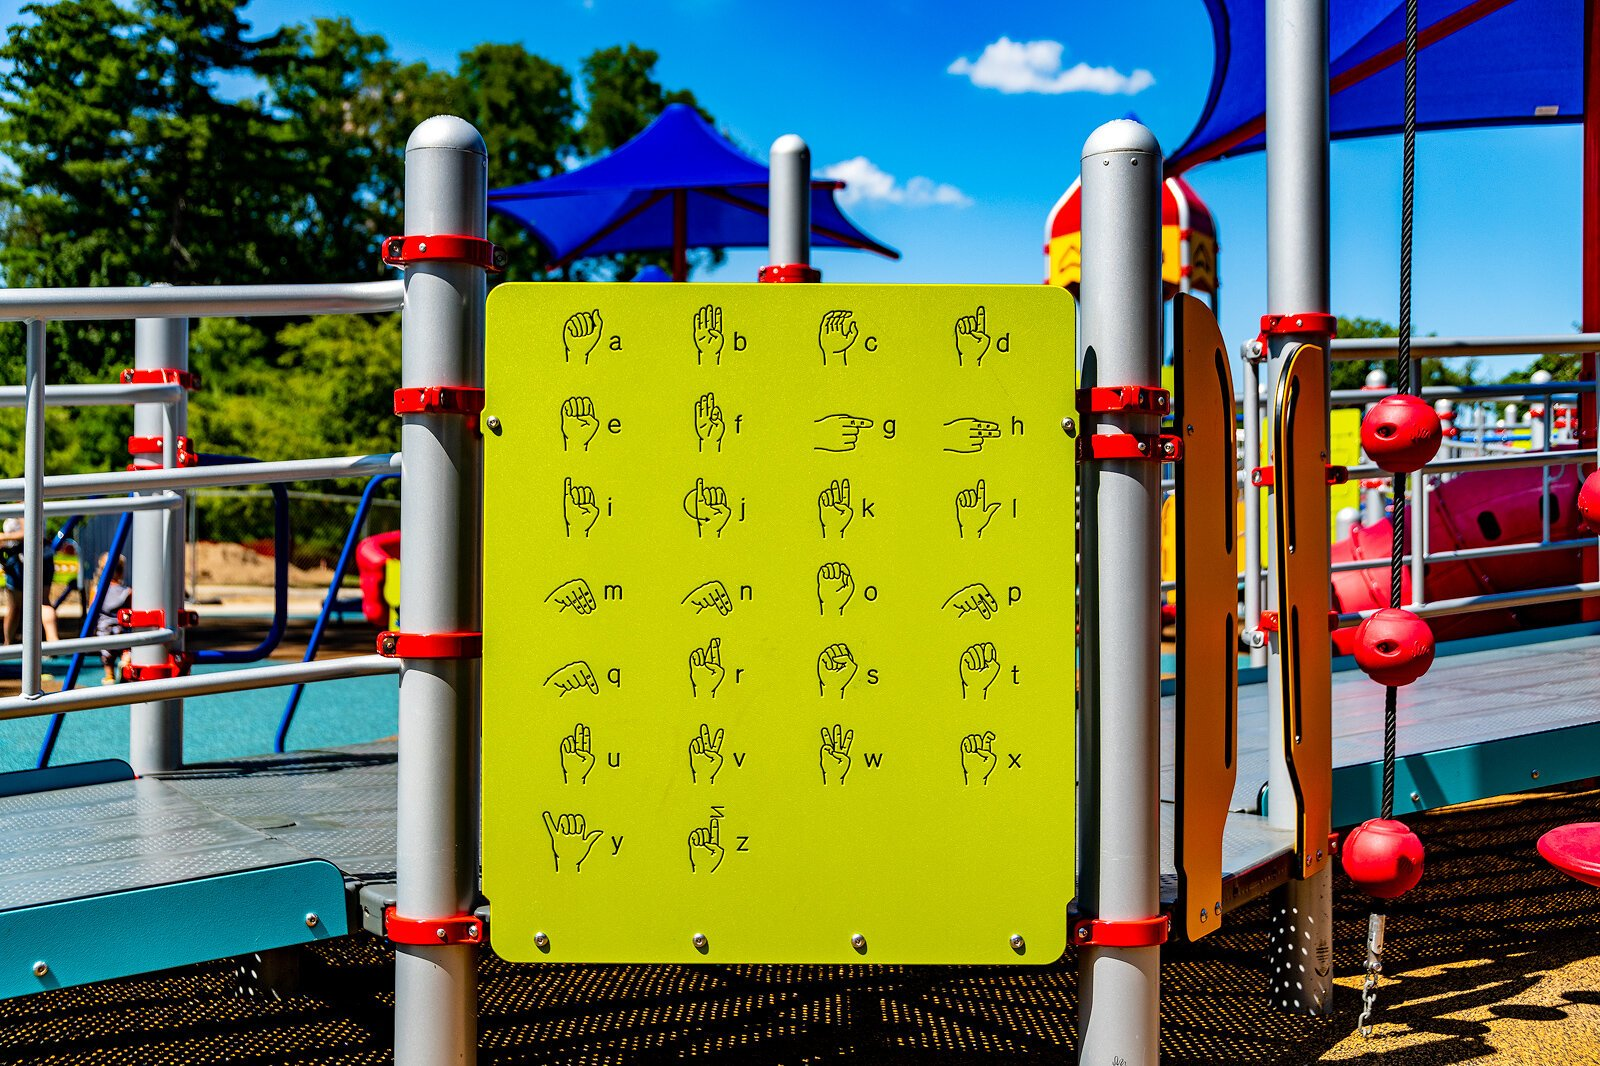 Scarlet's Playground at Dodge Park #5 in Commerce Township